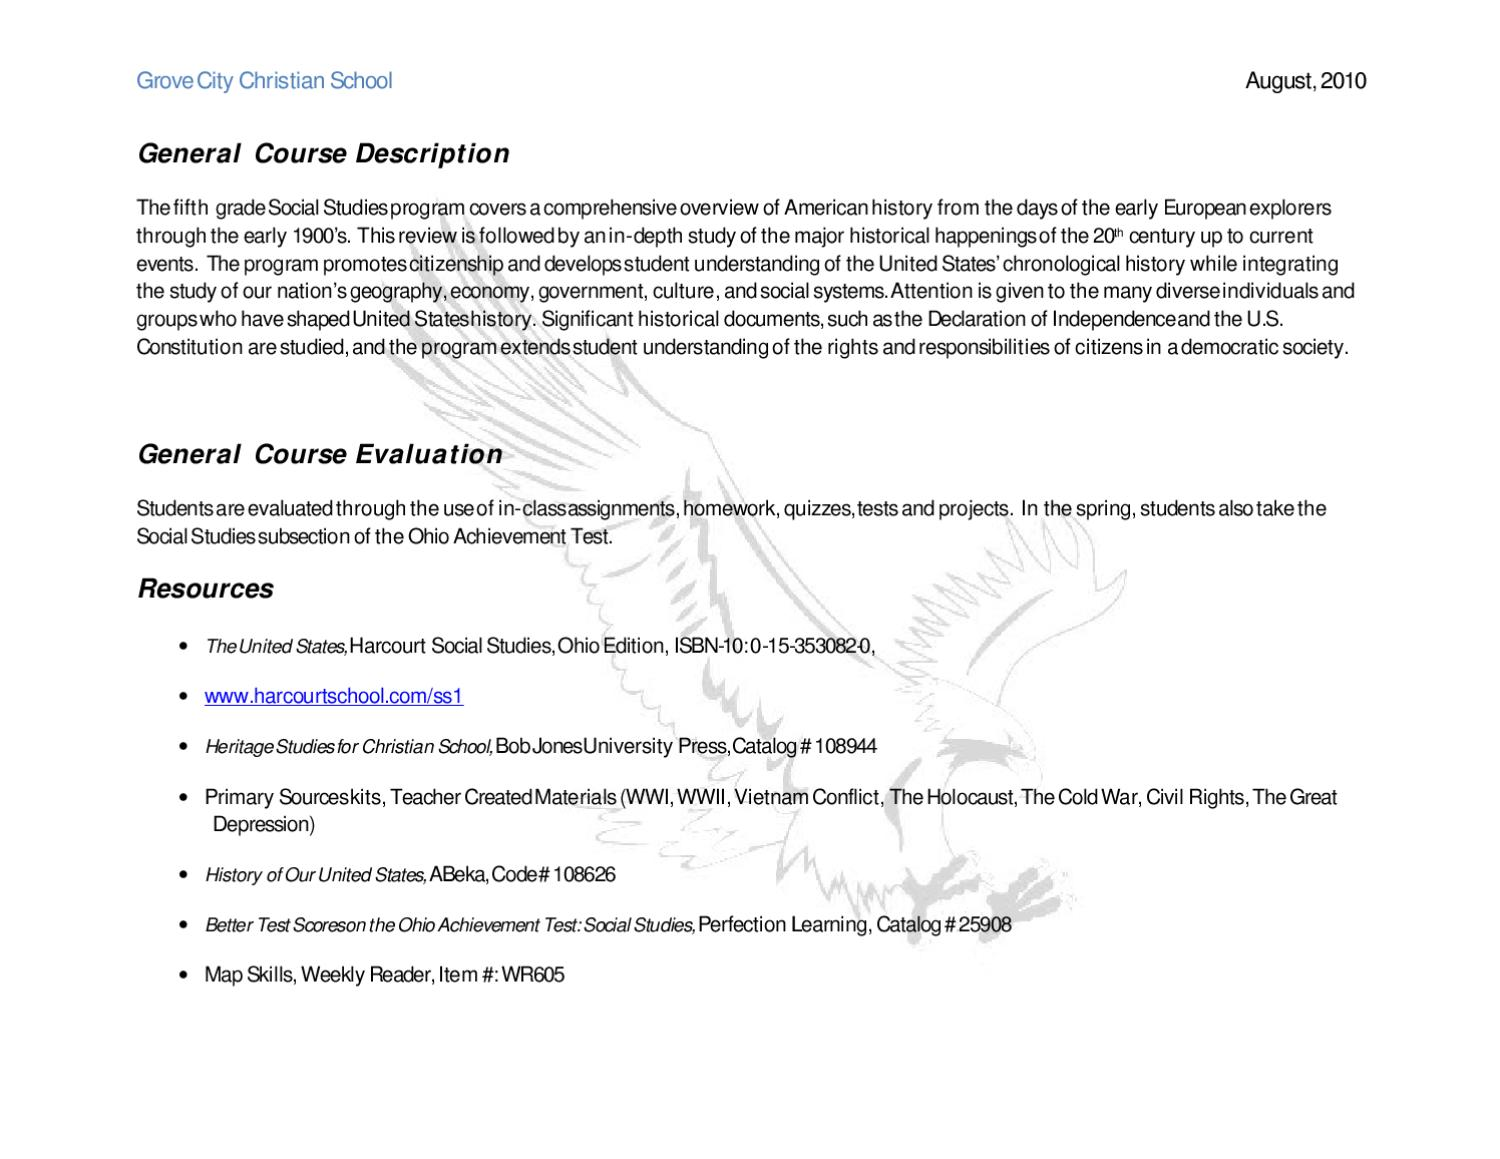 Fifth Grade Curriculum Overview Time4Learning - psychologyarticles info